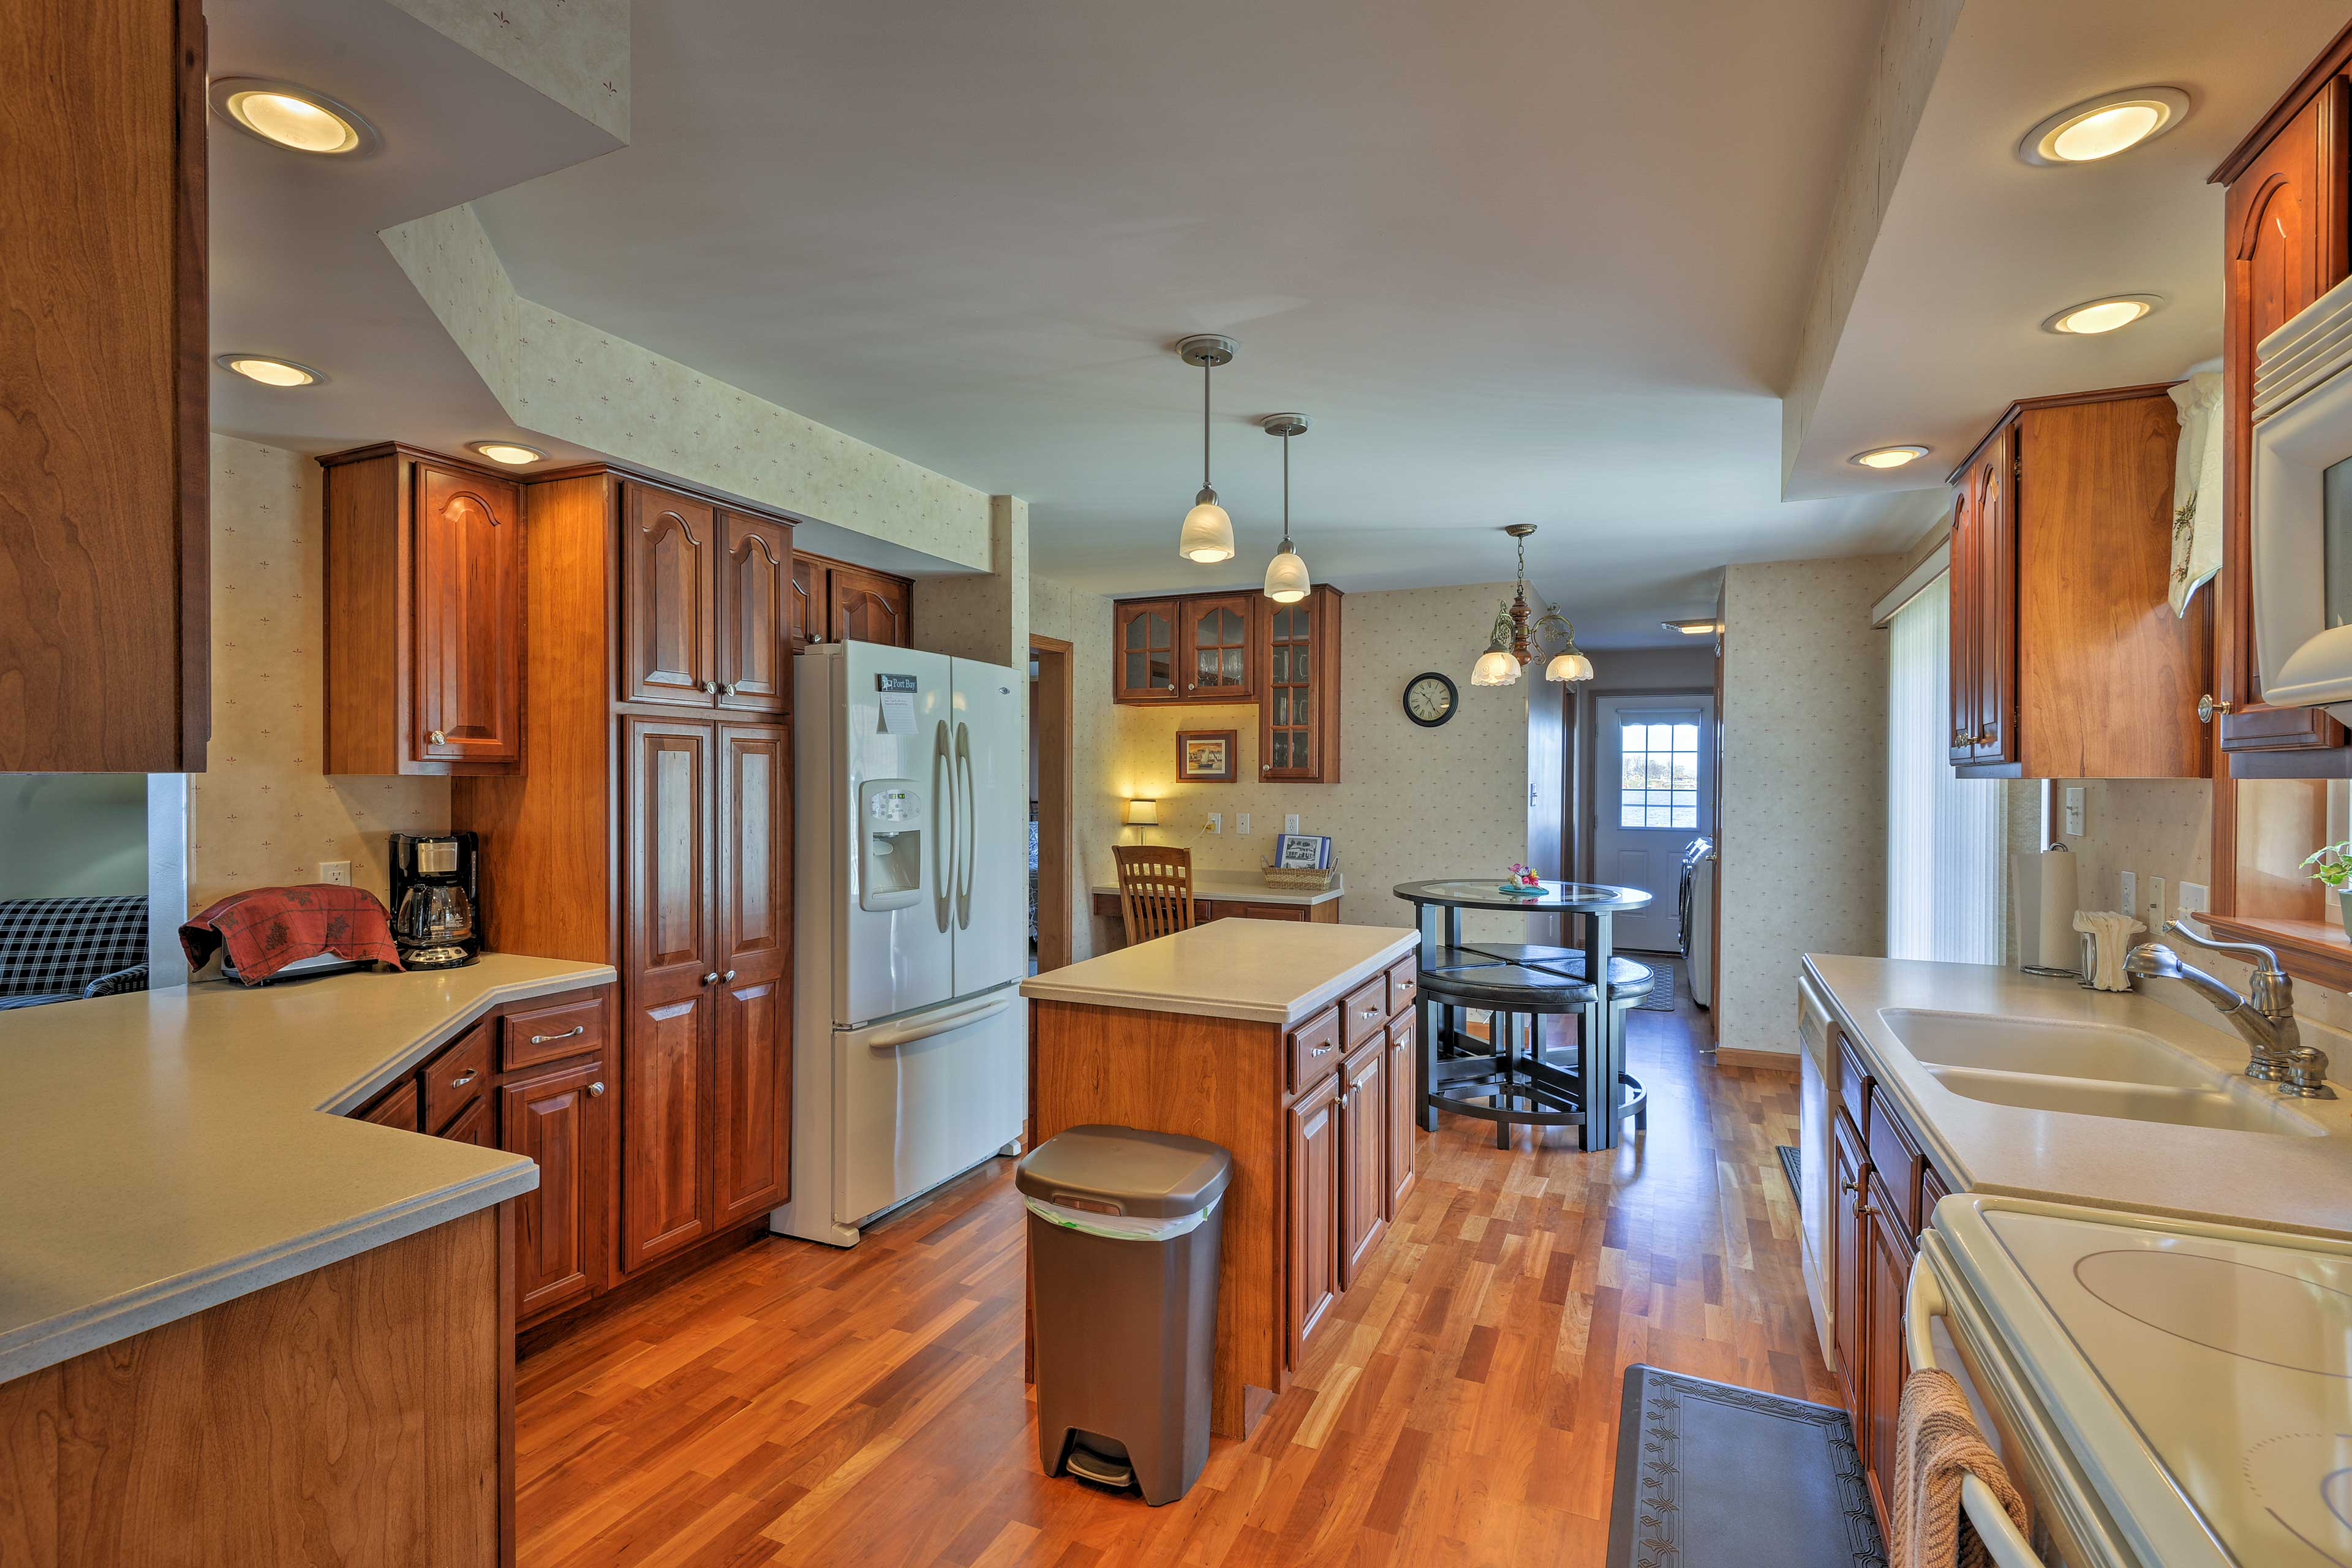 Try out new recipes in the fully equipped kitchen with modern appliances.